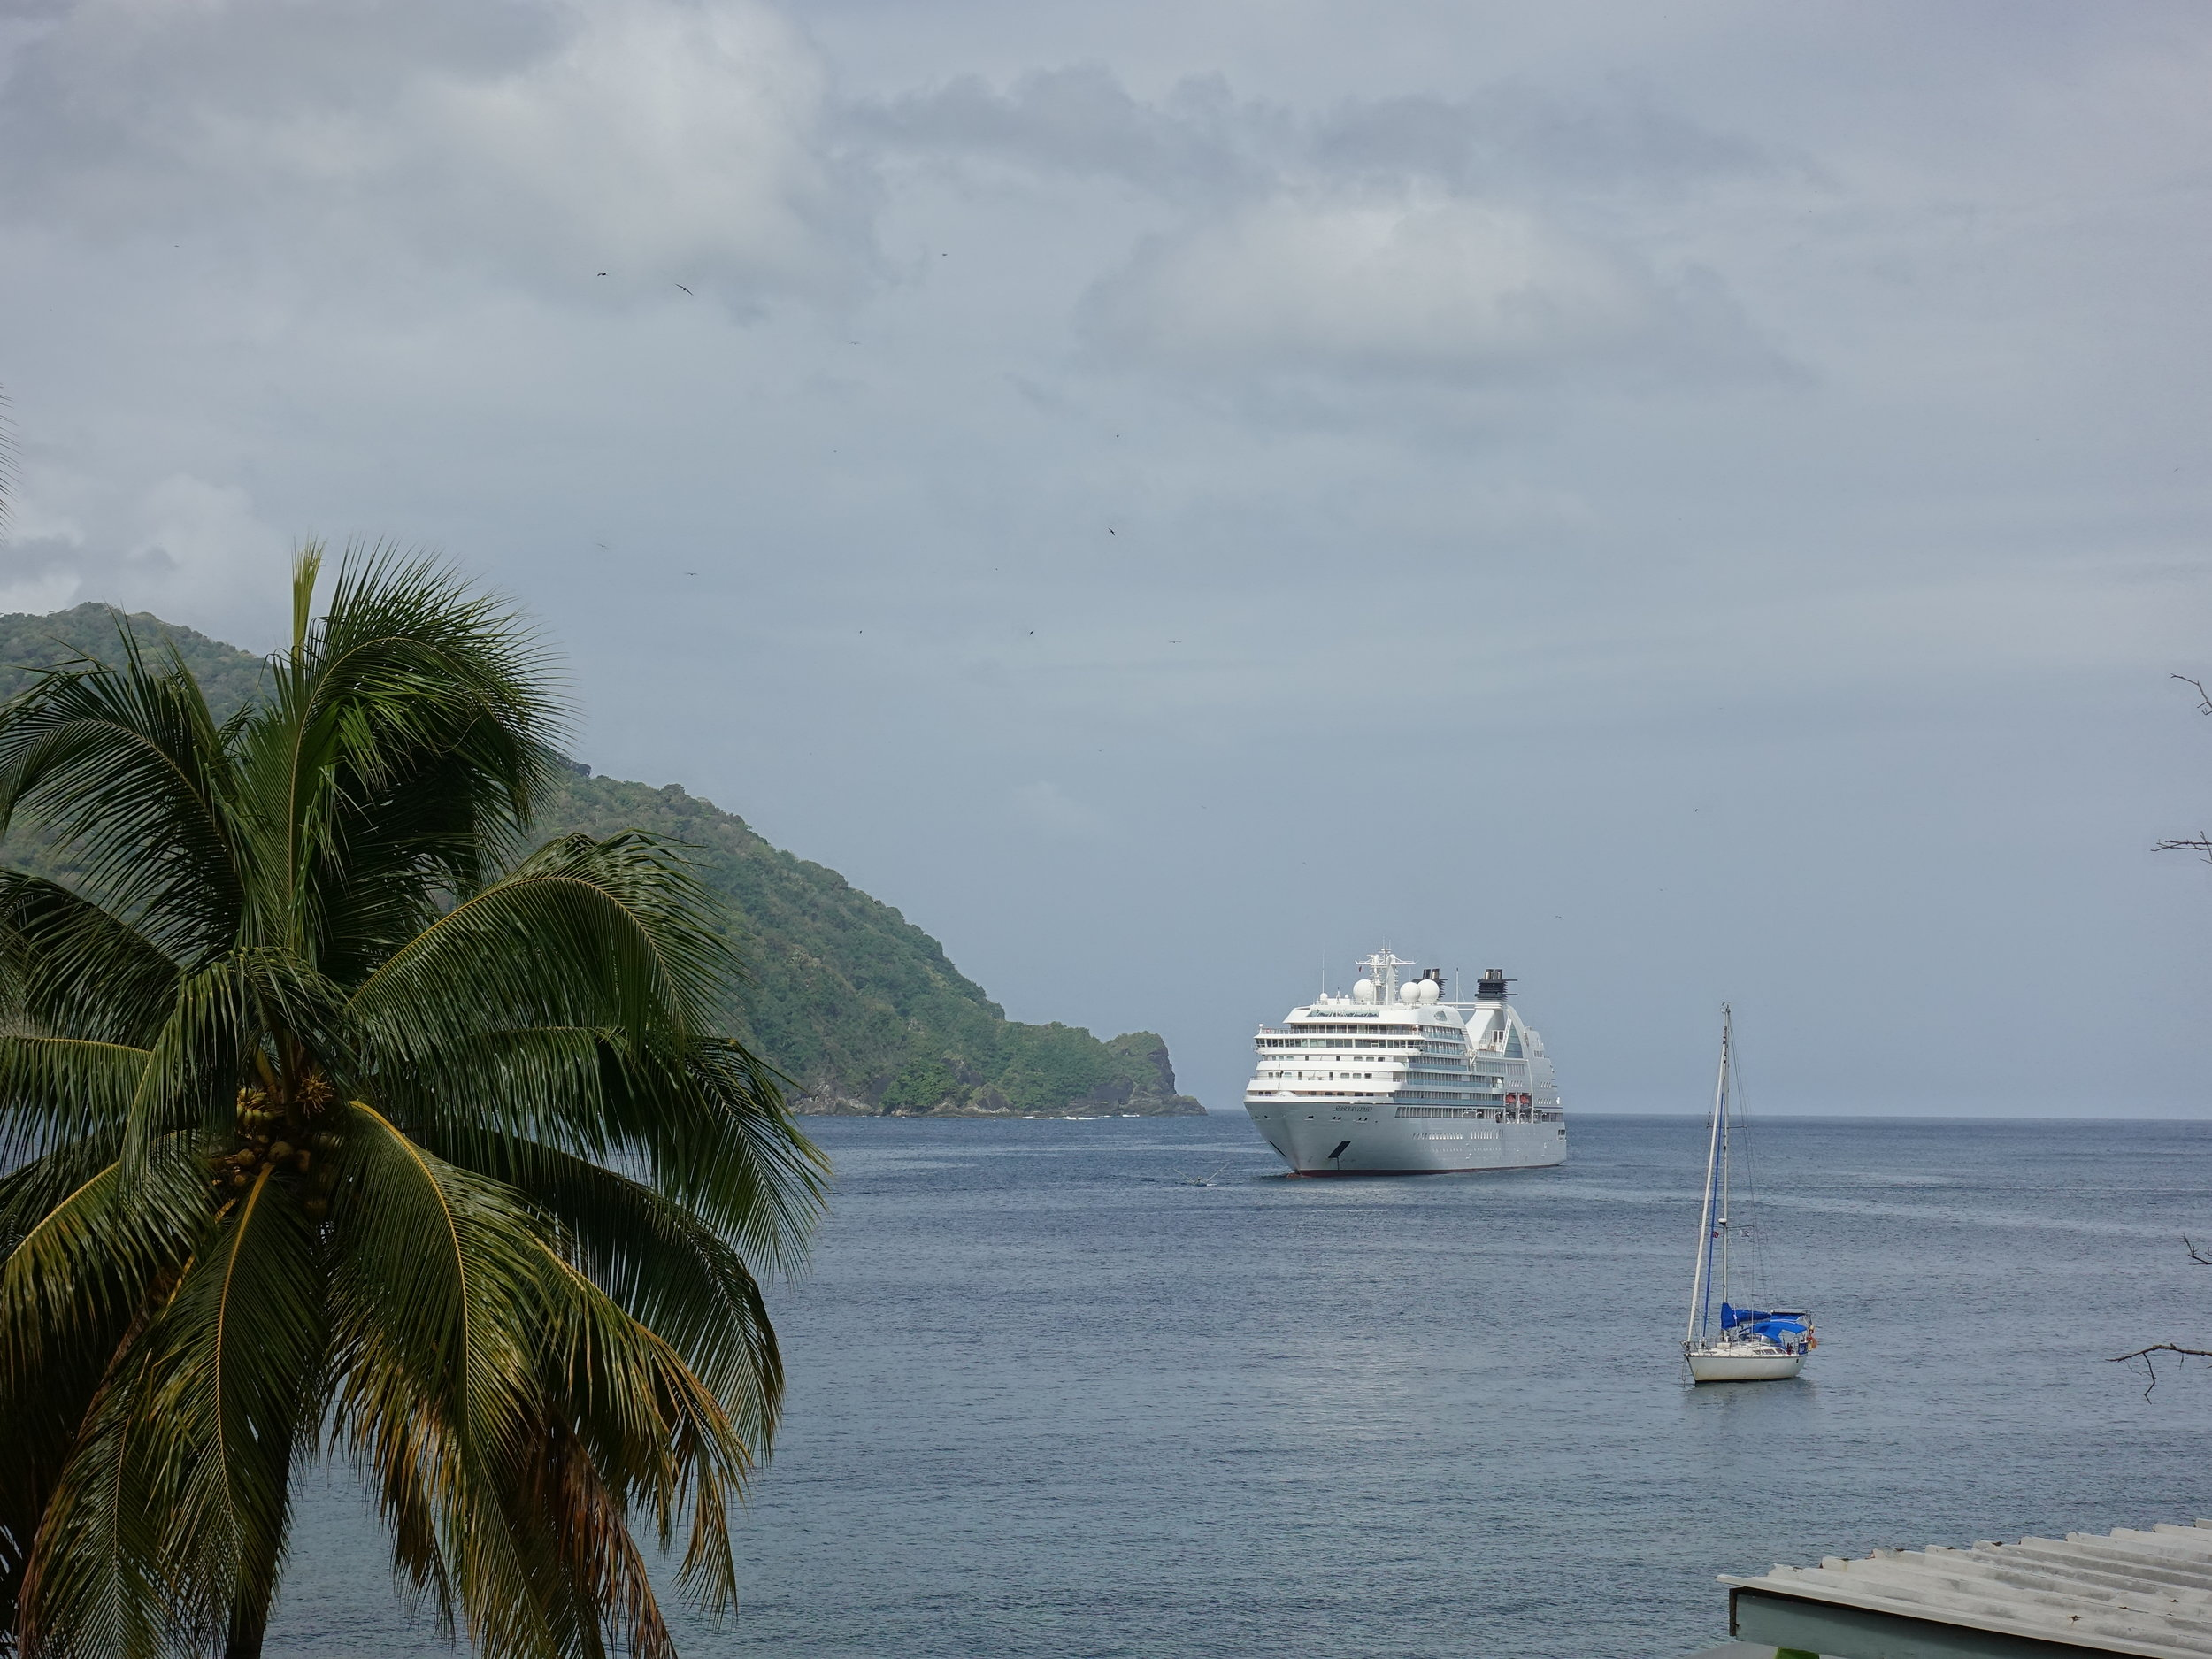 Seabourn Odyssey anchored off the beautiful port of Charlotteville in Tobago.